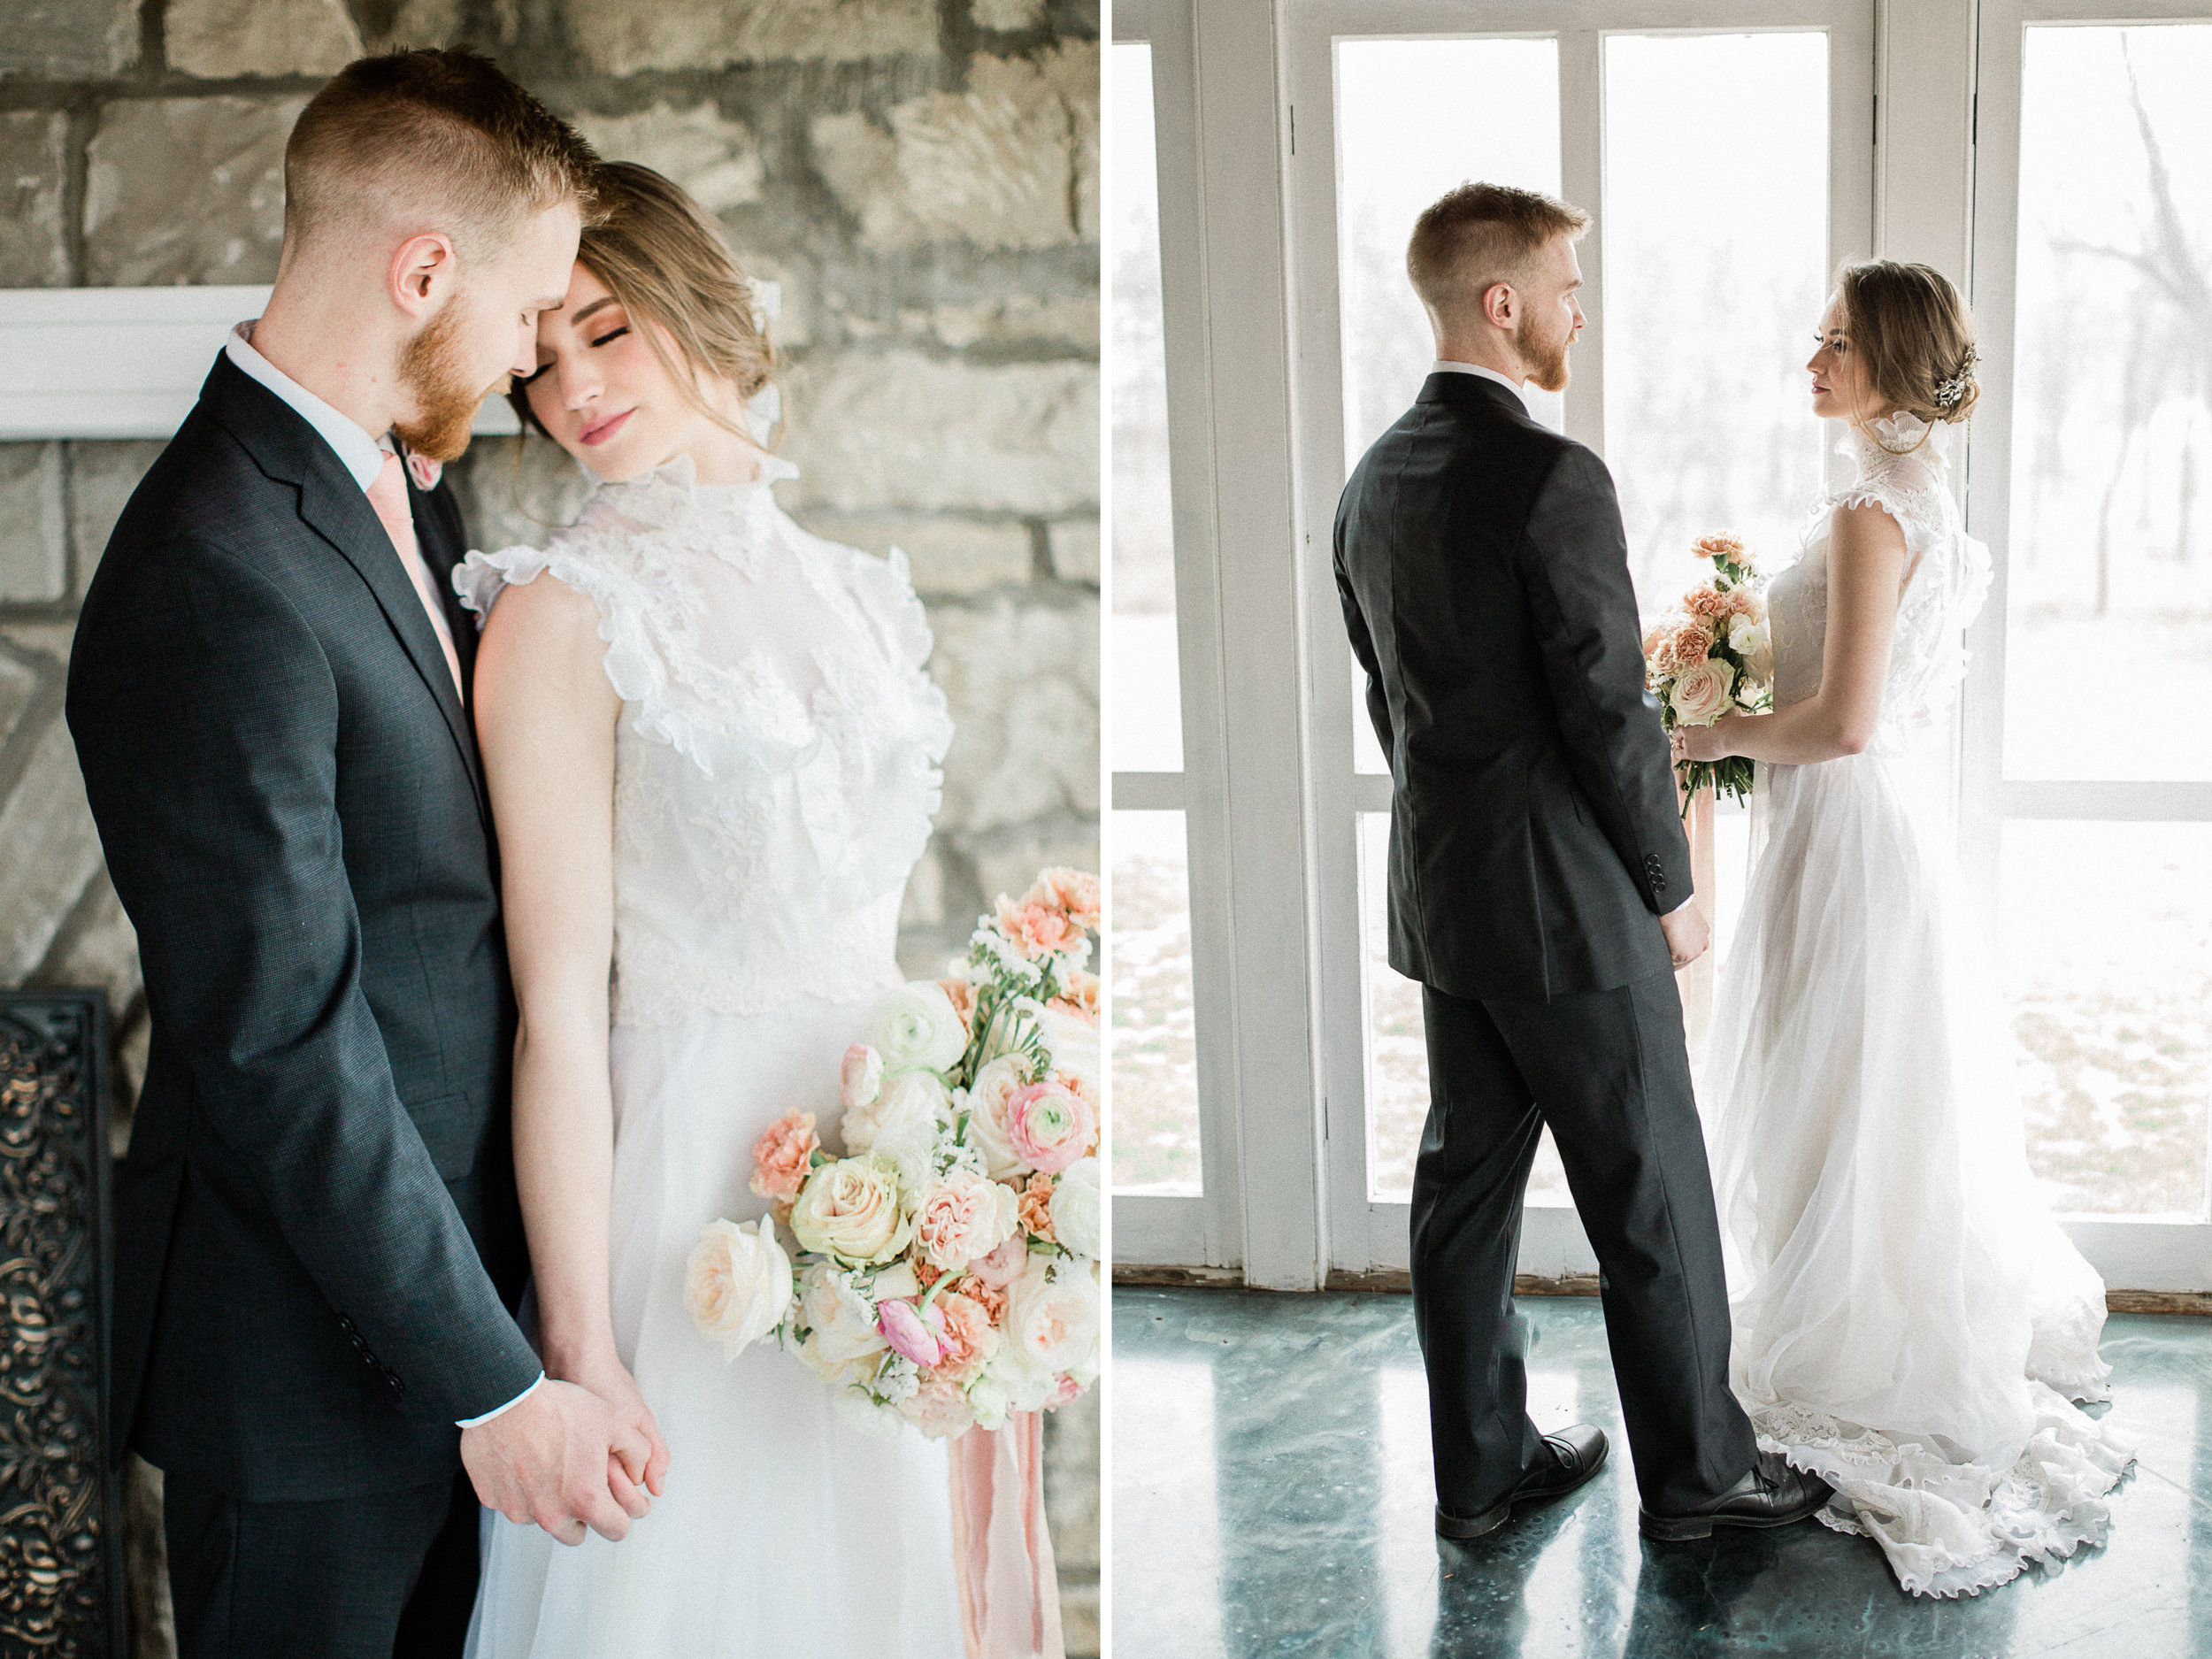 dorothy_louise_photography_old_stone_house_st._charles_bridal_inspiration4-1.jpg